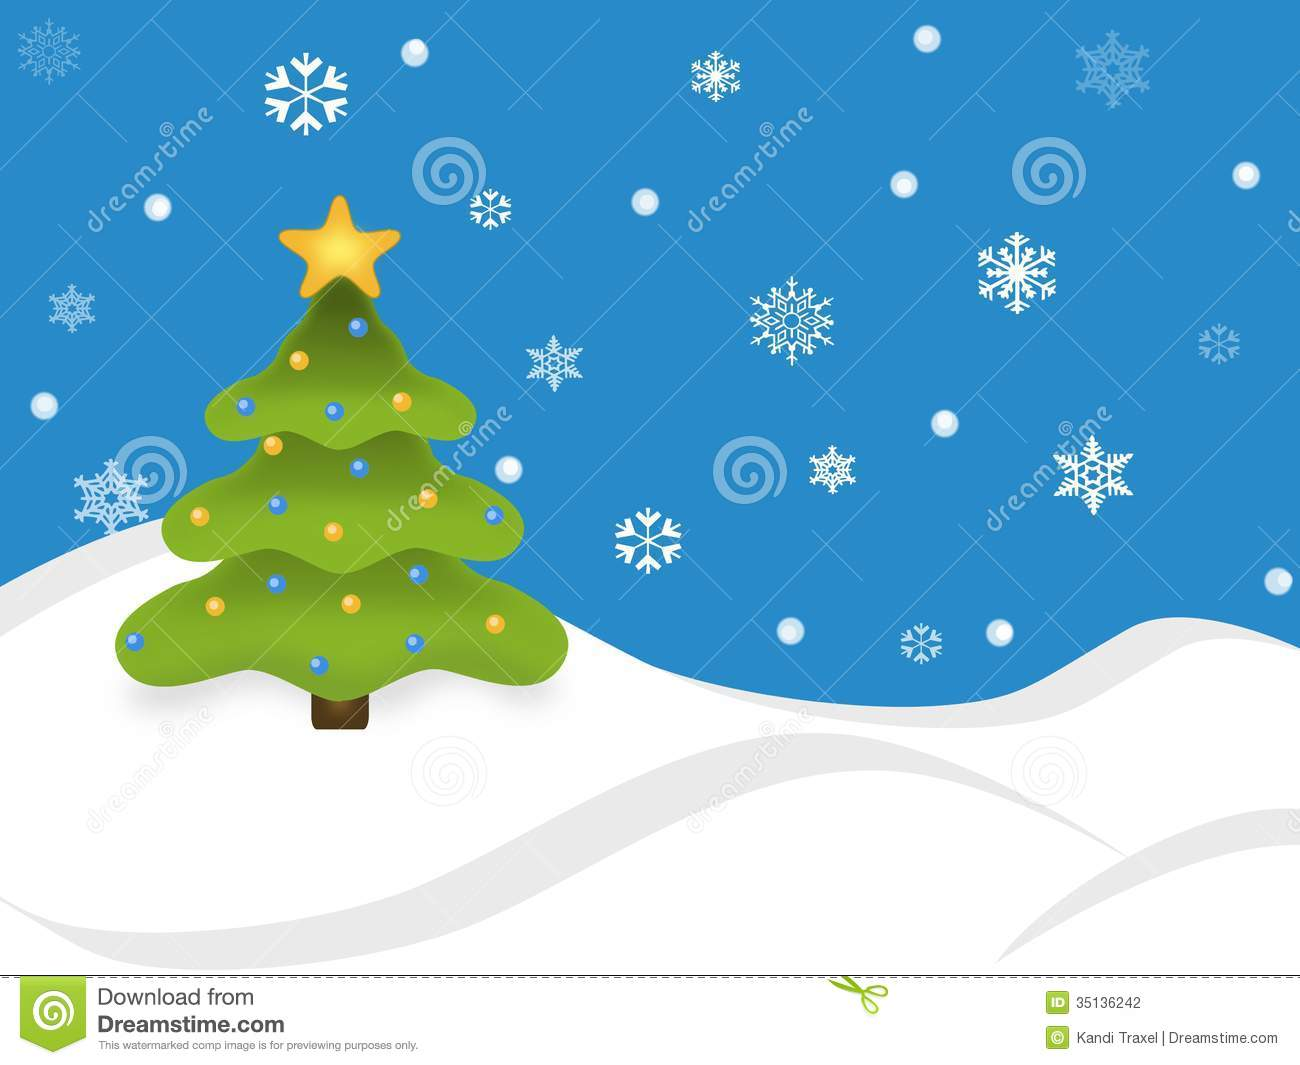 Snowy Holiday Tree Scene stock illustration. Illustration of card.